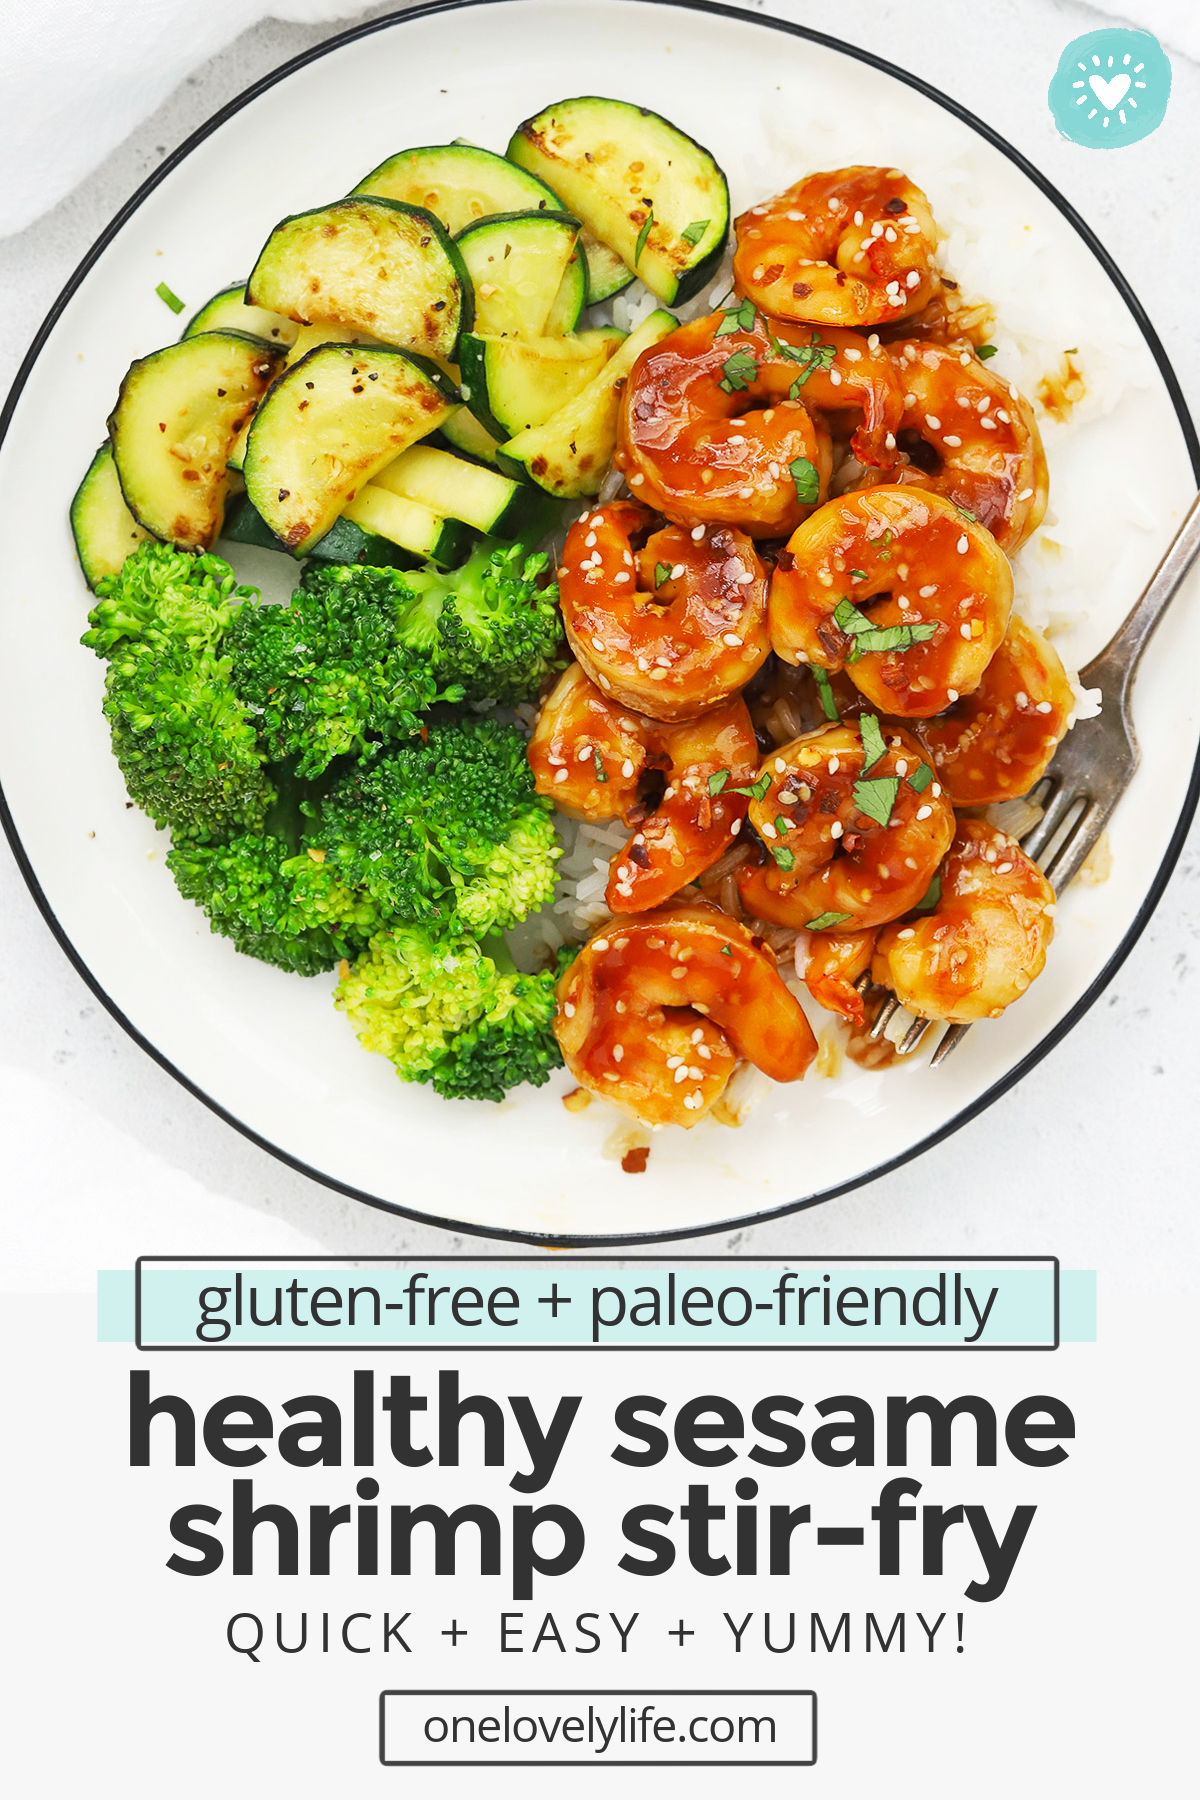 Easy Sesame Shrimp - Quick and easy healthy shrimp stir fry with a sweet, tangy sesame sauce. We LOVE this easy dinner! (Gluten-Free, Paleo-Friendly)// Healthy Sesame Shrimp Stir Fry // Paleo Shrimp Stir Fry // Gluten-Free Shrimp Stir Fry // Honey Sesame Shrimp // Sesame Garlic Shrimp #shrimp #stirfry #glutenfree #paleo